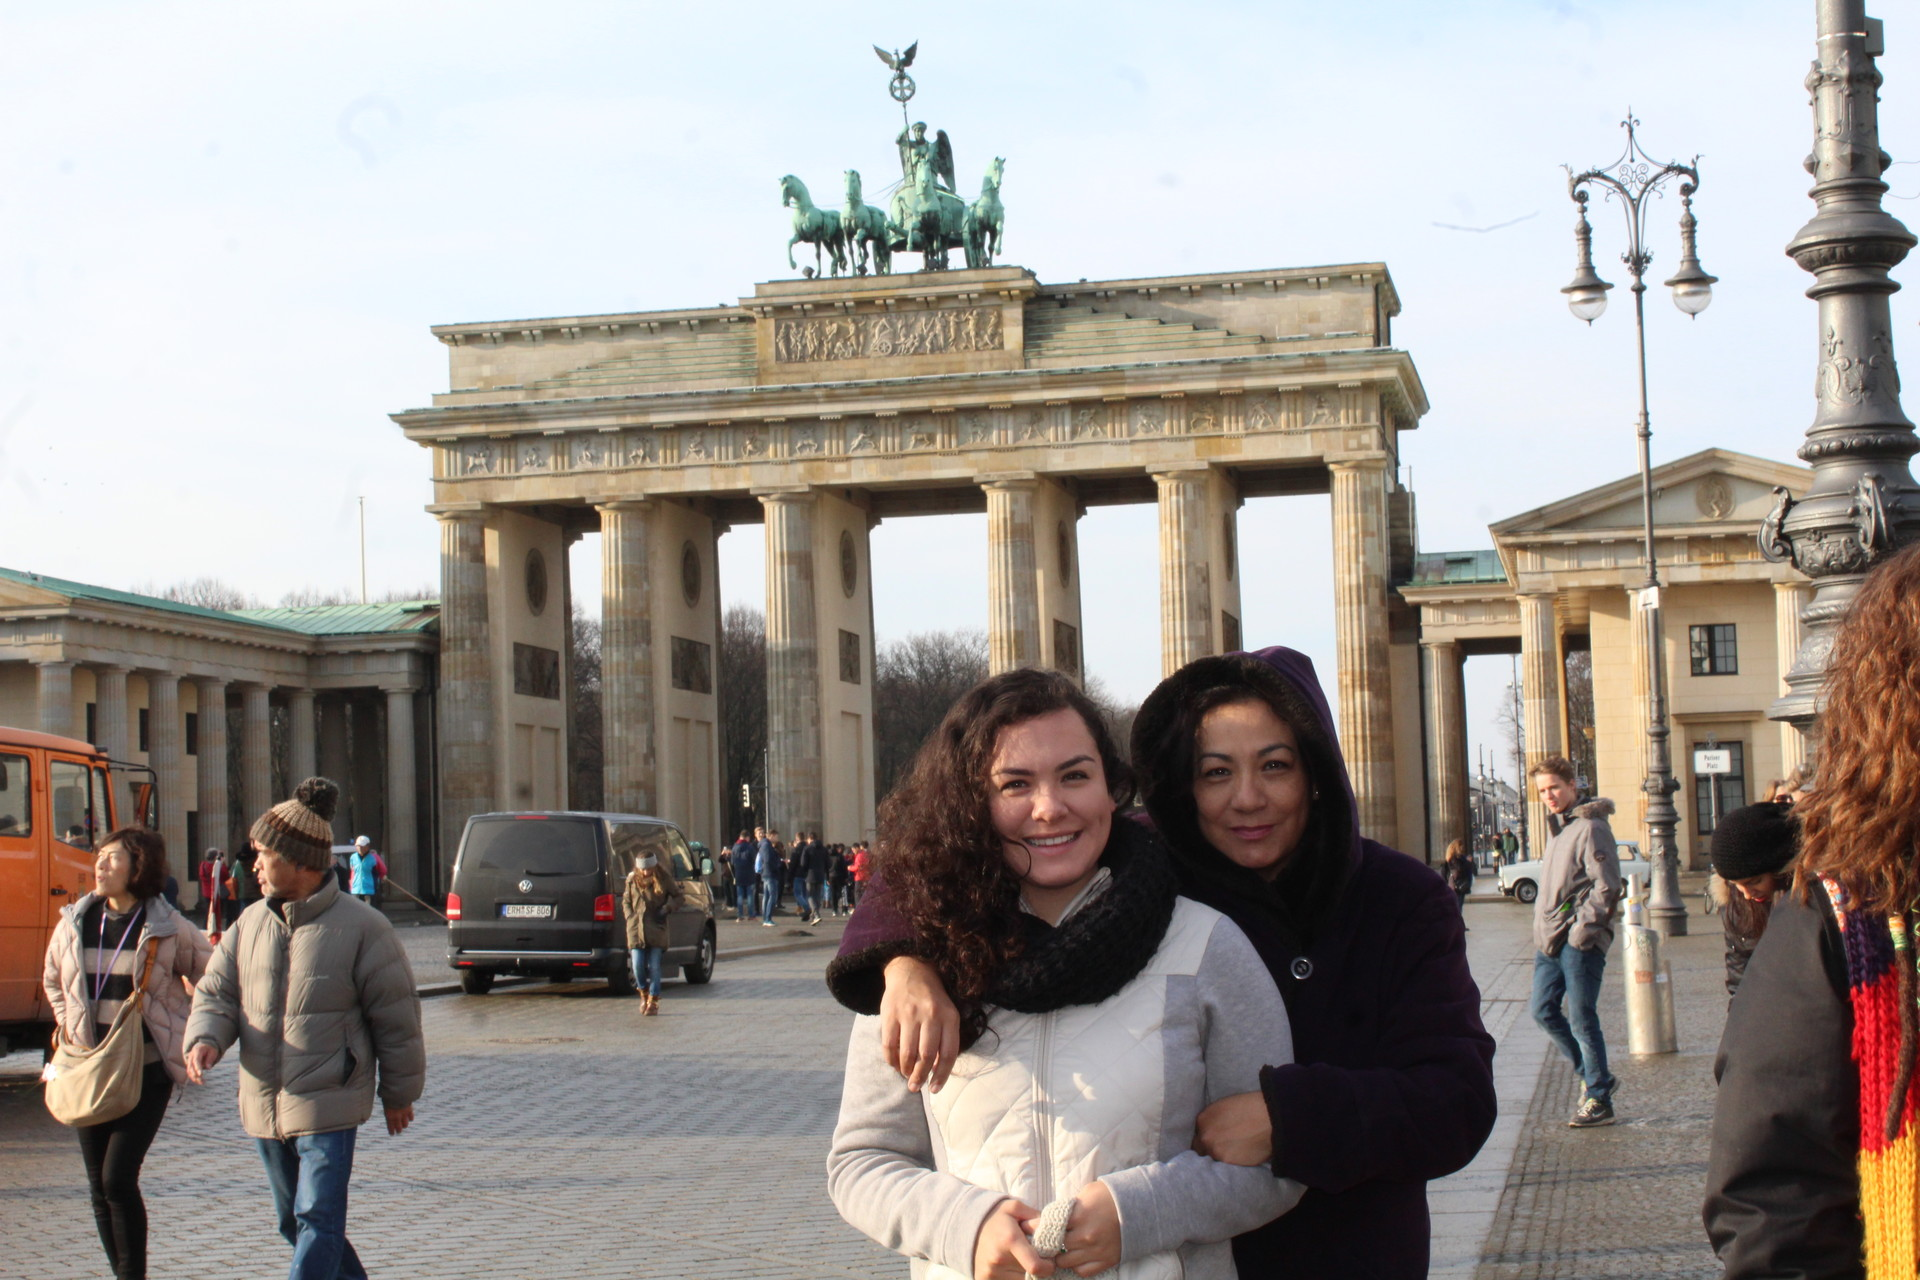 The Brandenburg Gate in Berlin: A spoonful of history and a hundred kilos of reflection